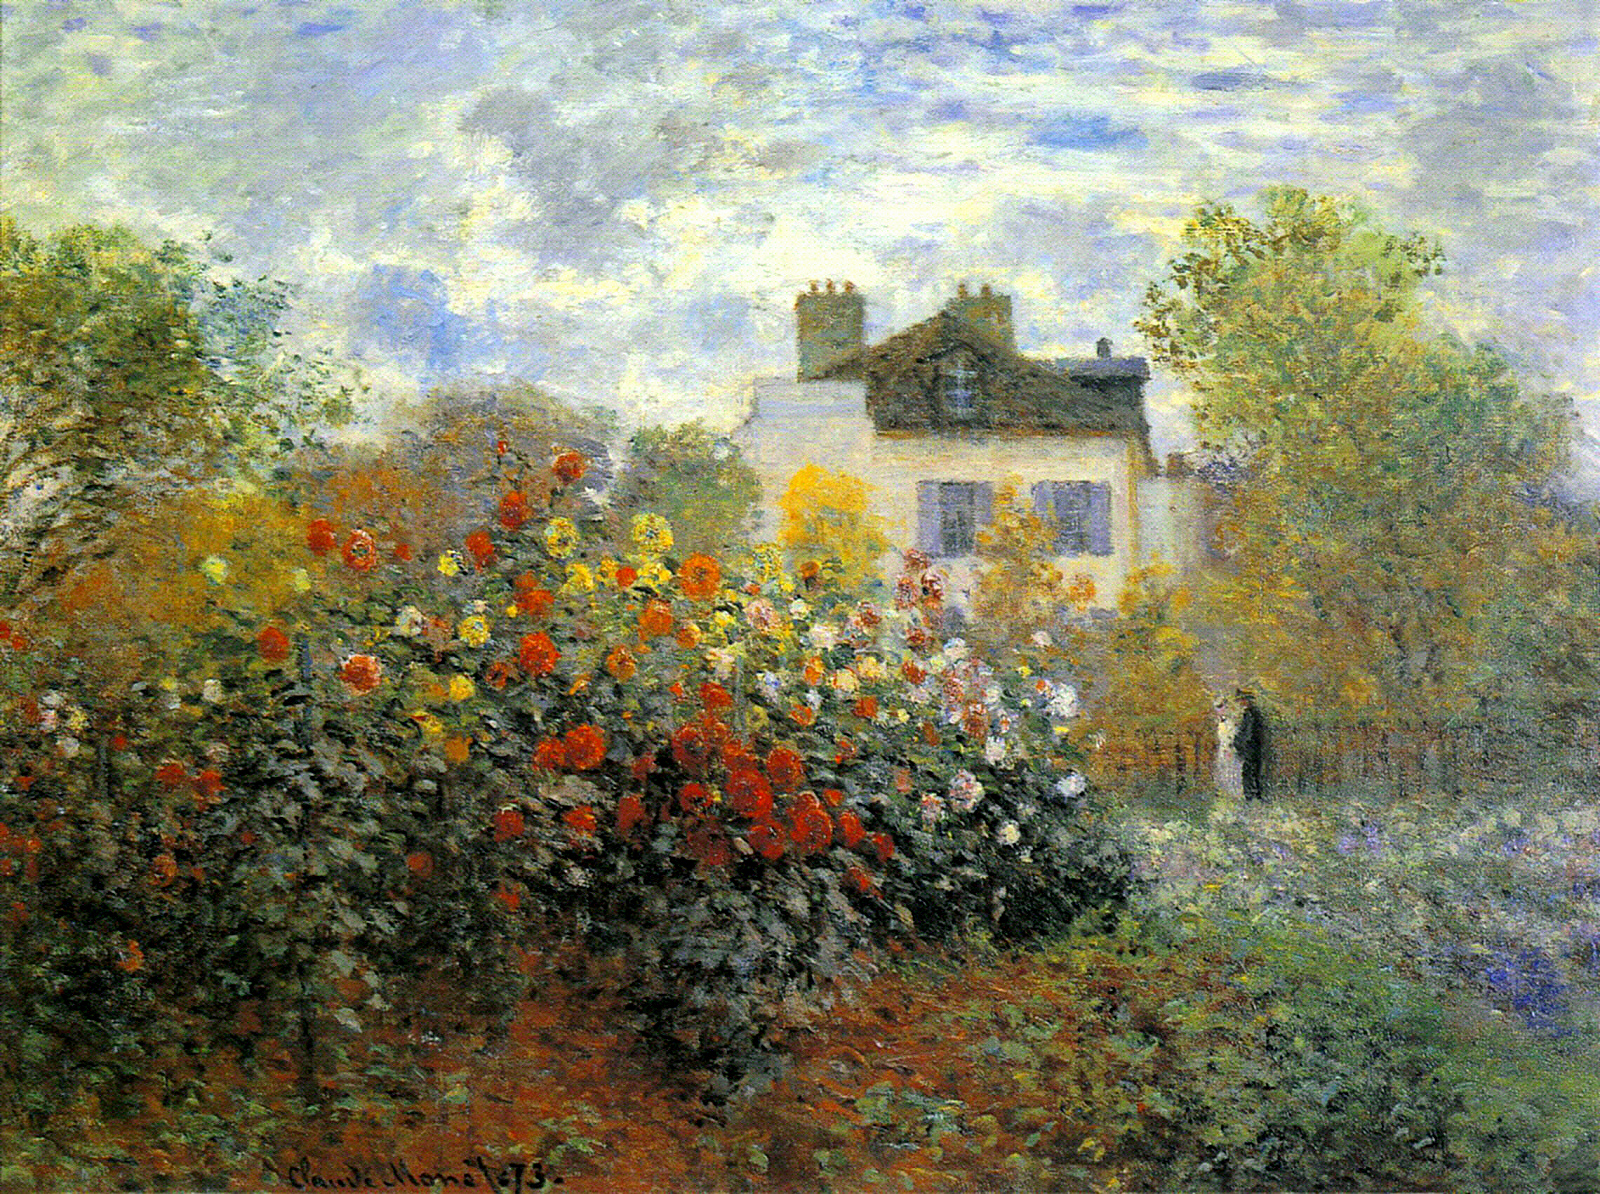 The garden of monet at argenteuil 1873 claude monet for Claude monet impressionist paintings